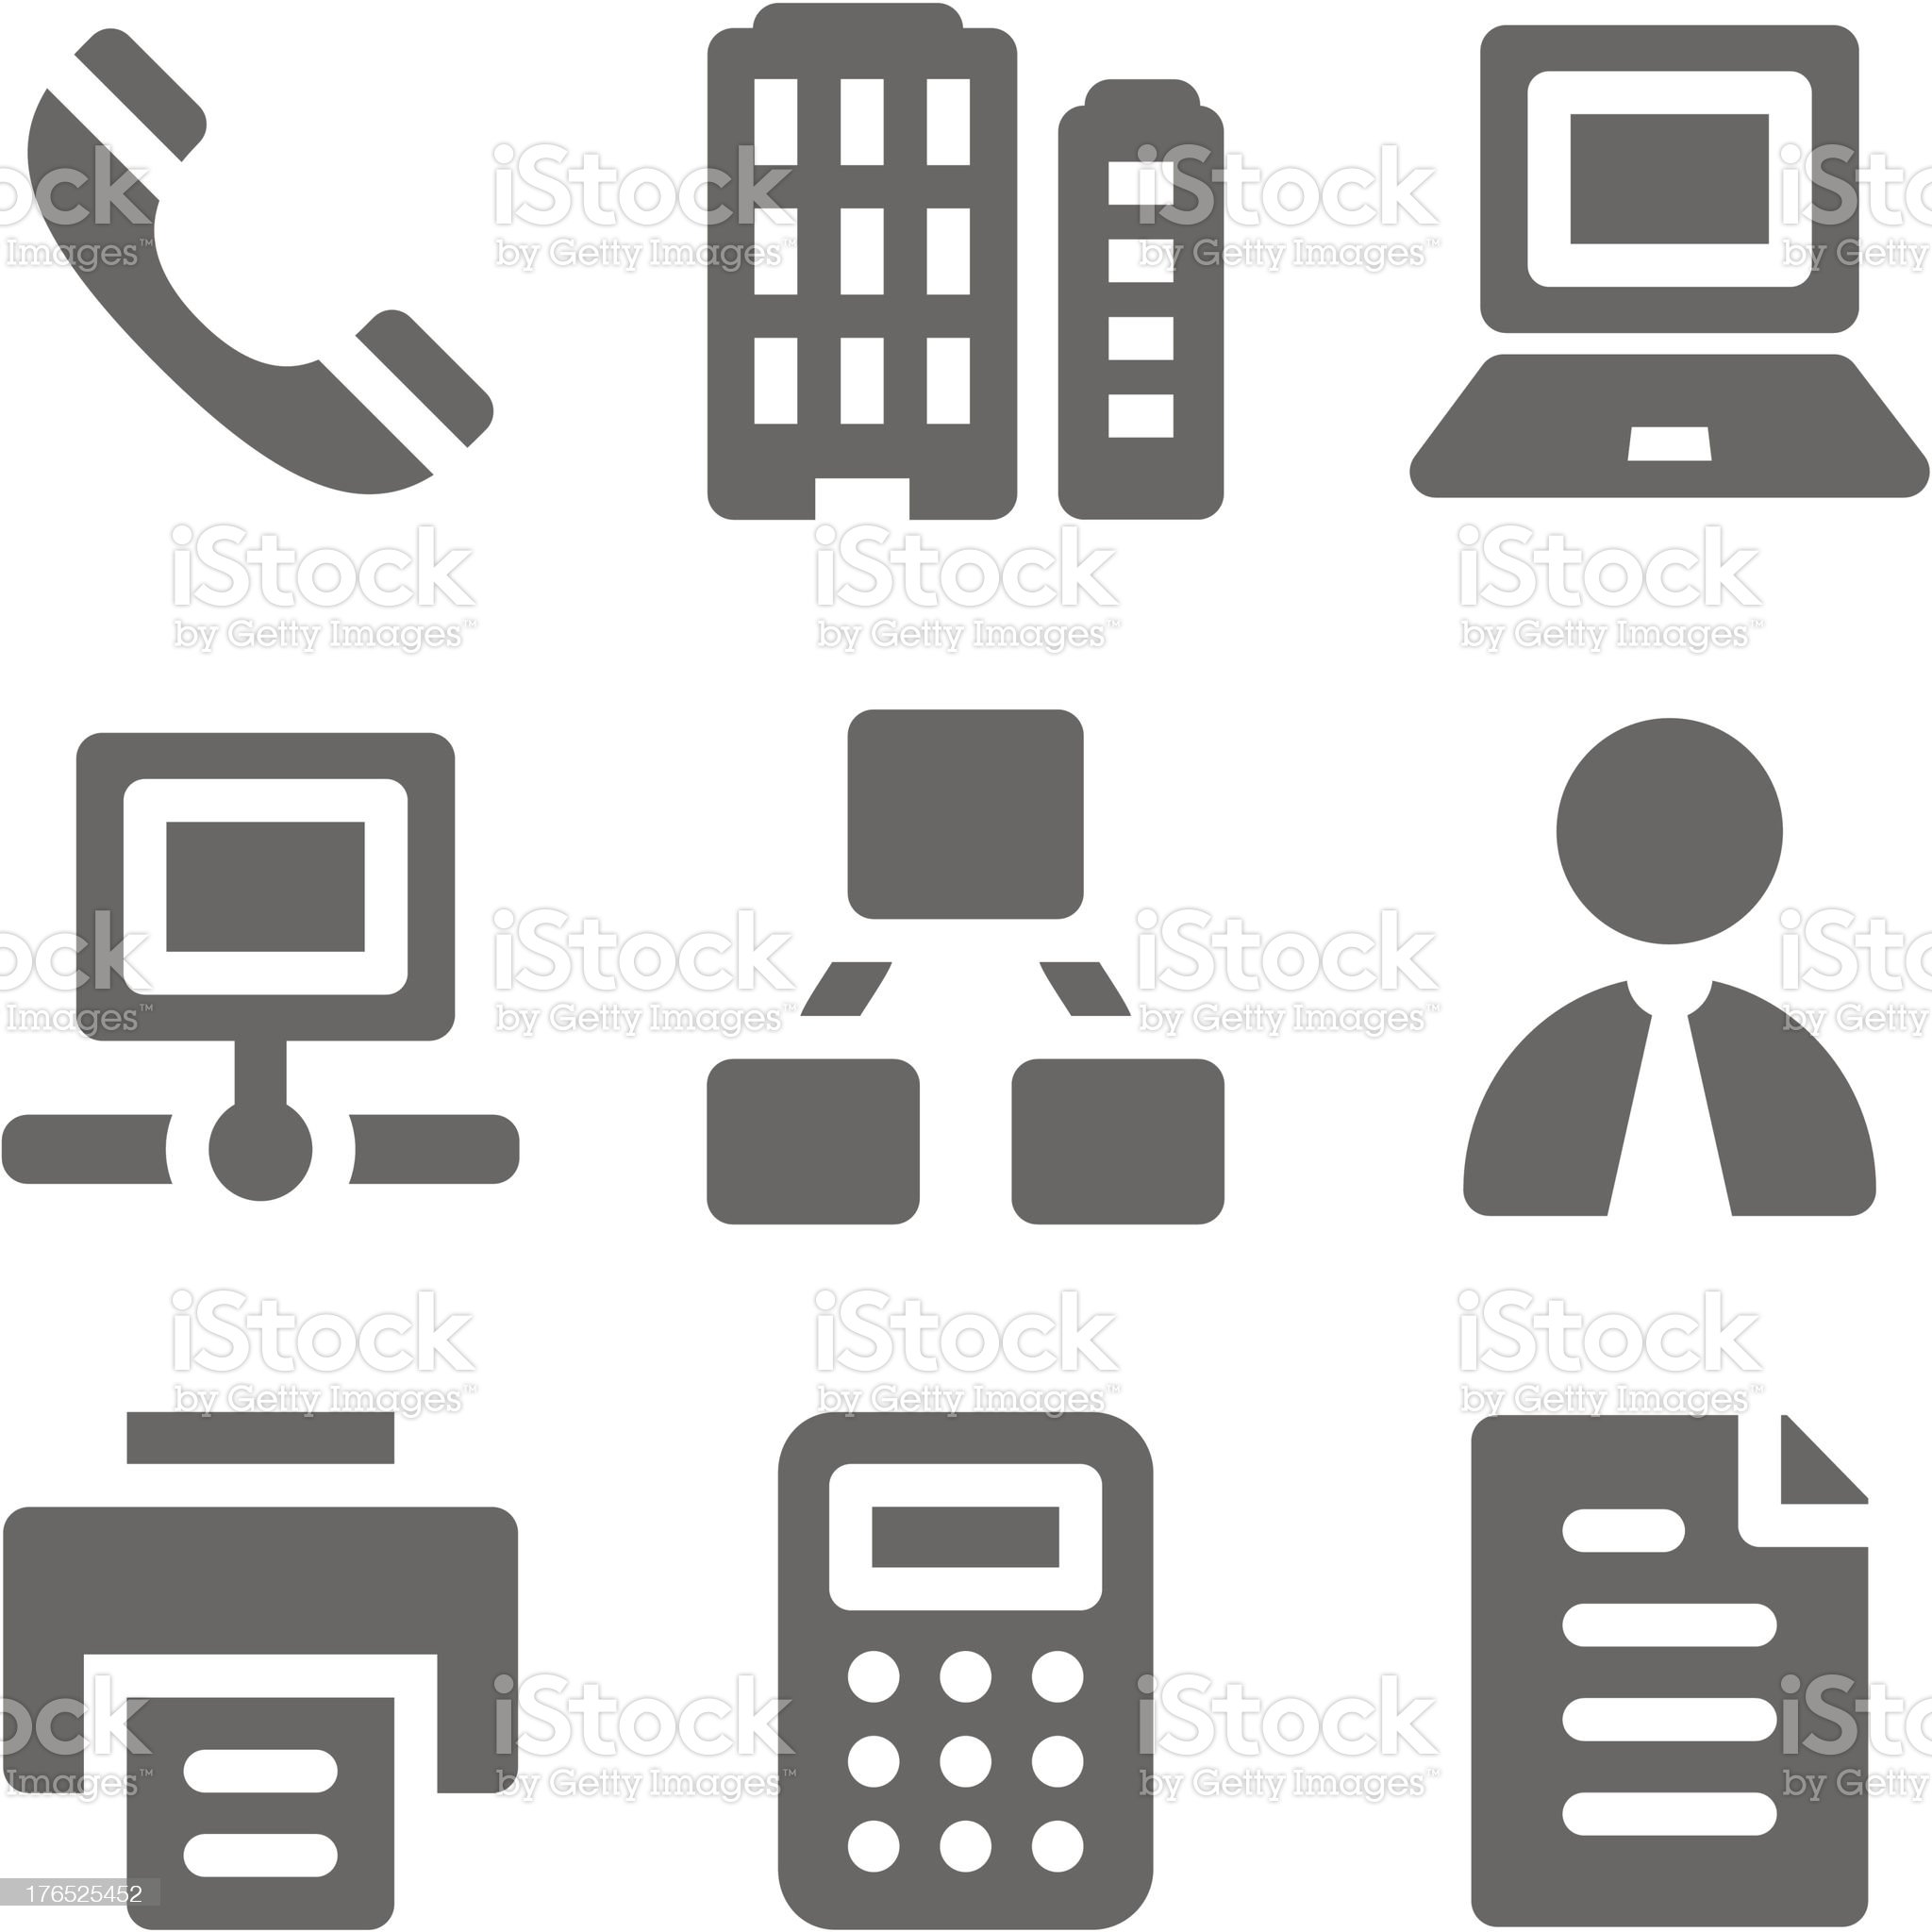 Office web icons, grey solid series royalty-free stock vector art